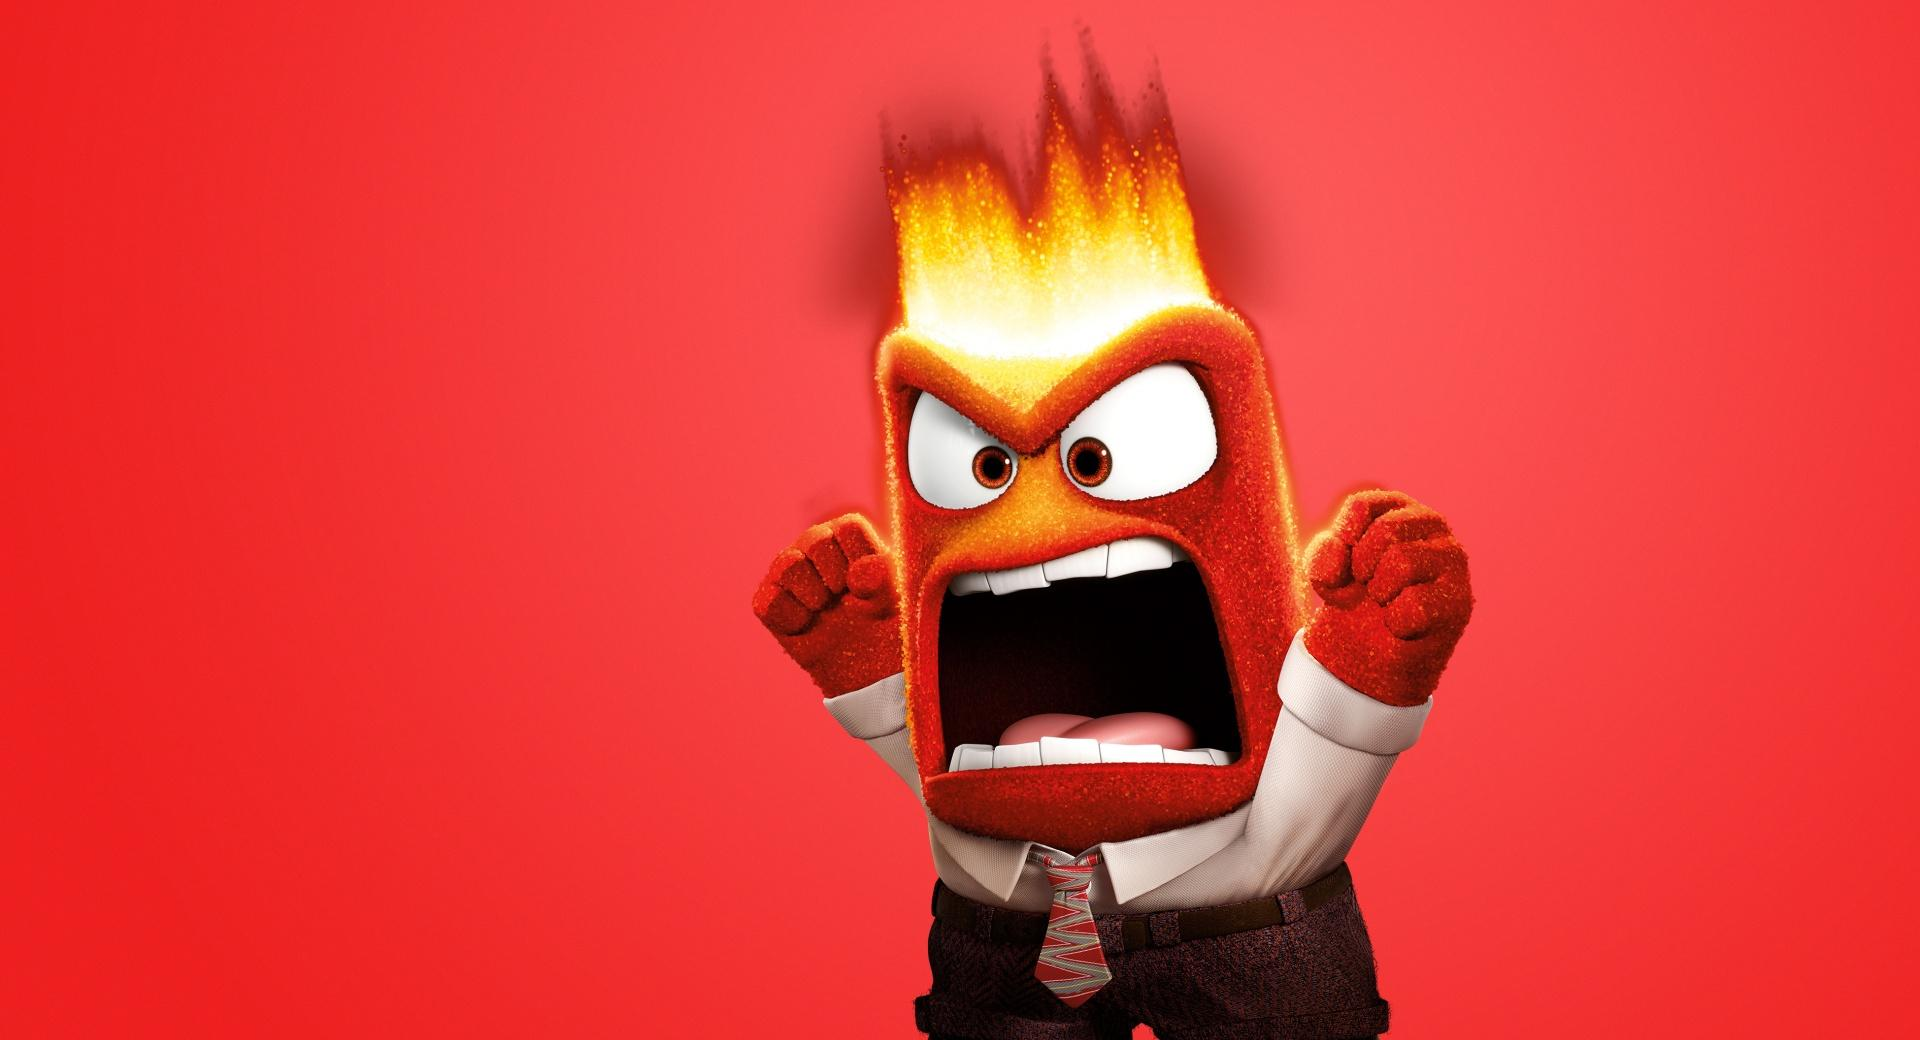 Inside Out 2015 Anger - Disney, Pixar wallpapers HD quality